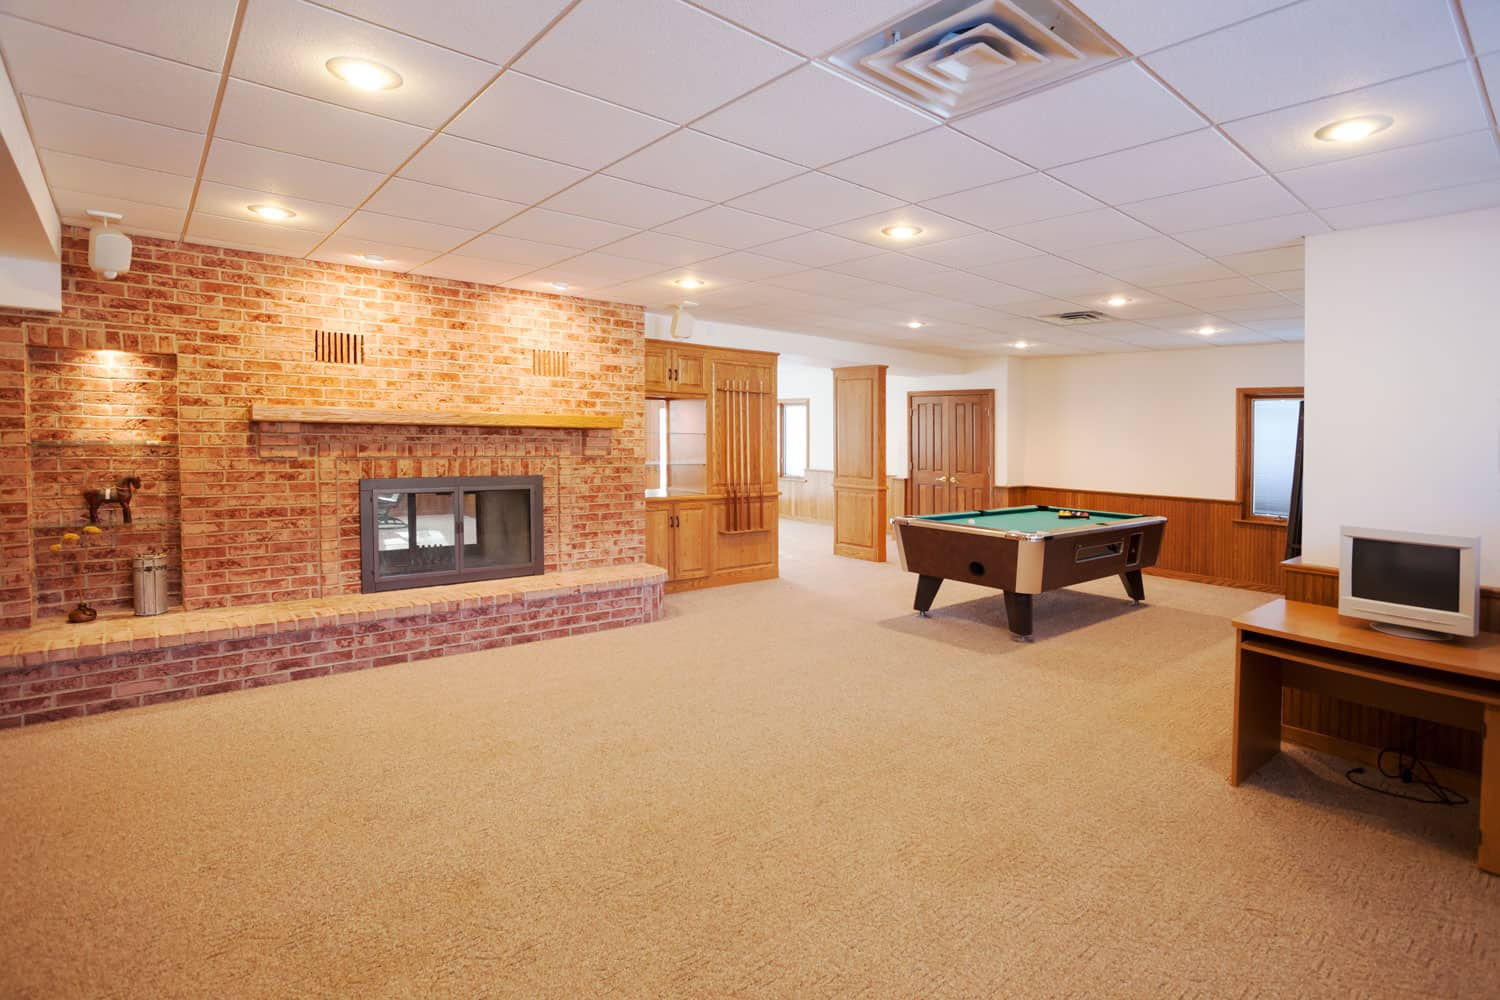 Interior of a spacious basement entertainment area with a brick wall and carpeted flooring